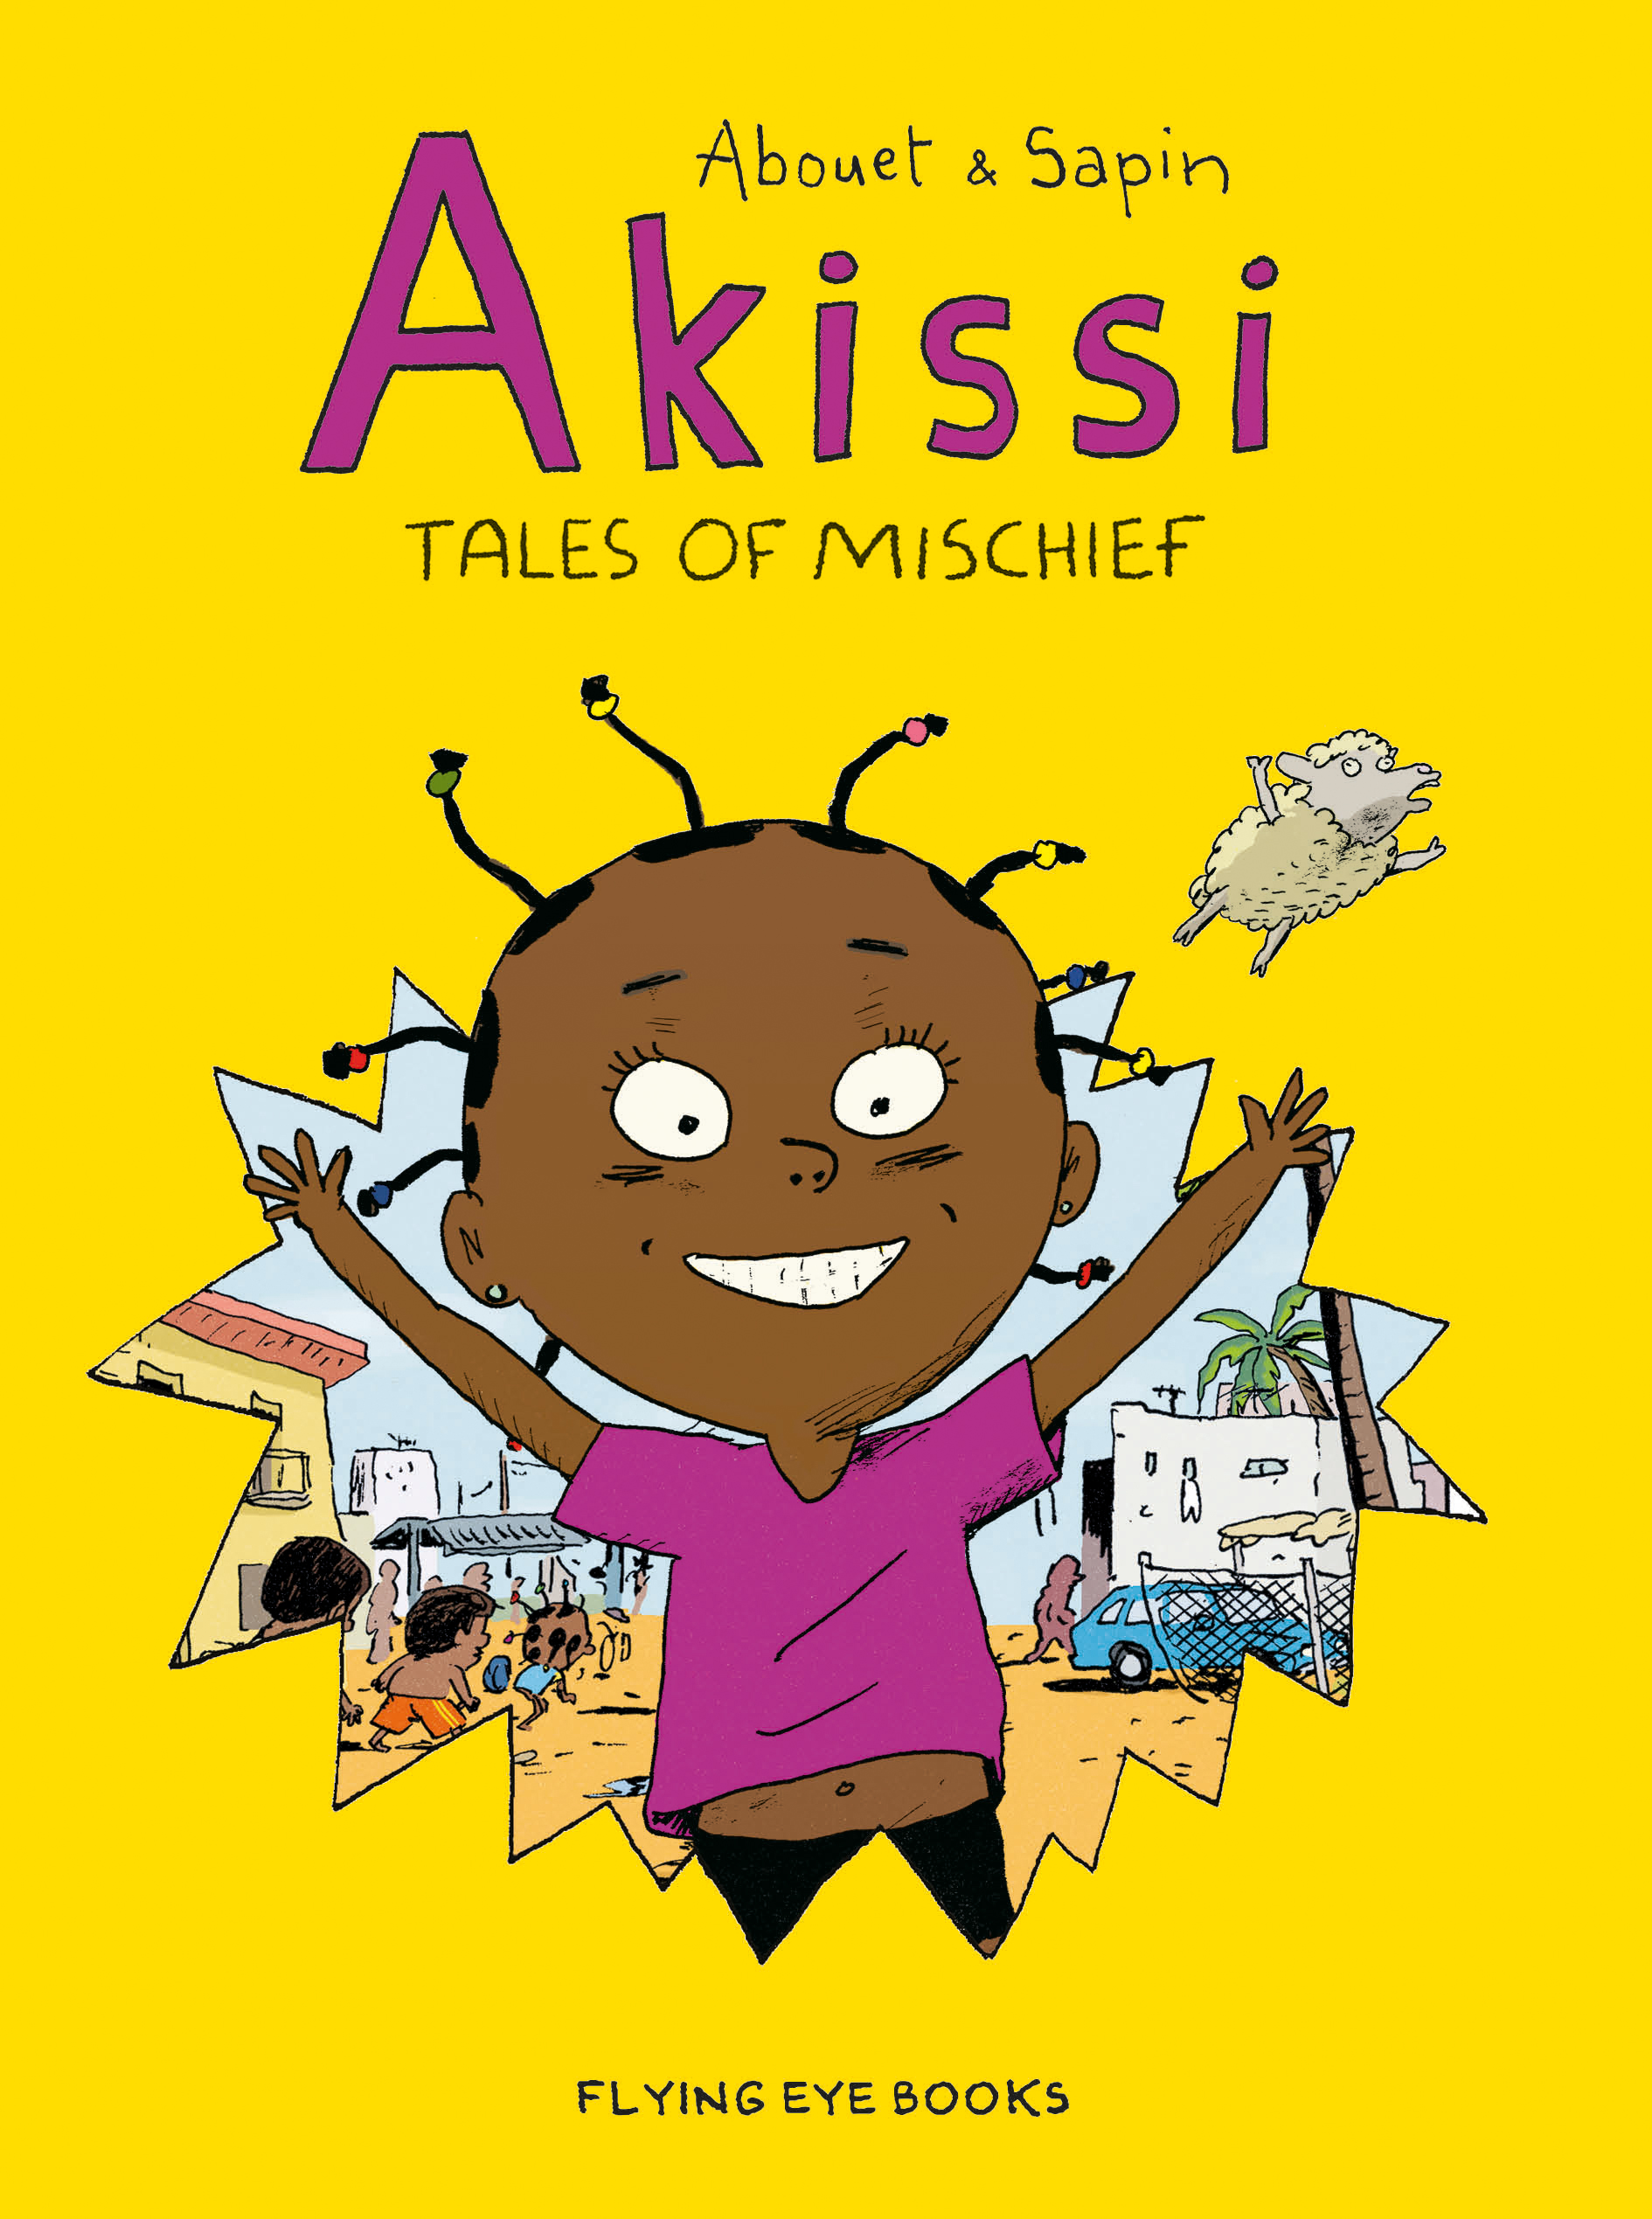 Cover of Akissi: Tales of Mischief, by Marguerite Abouet